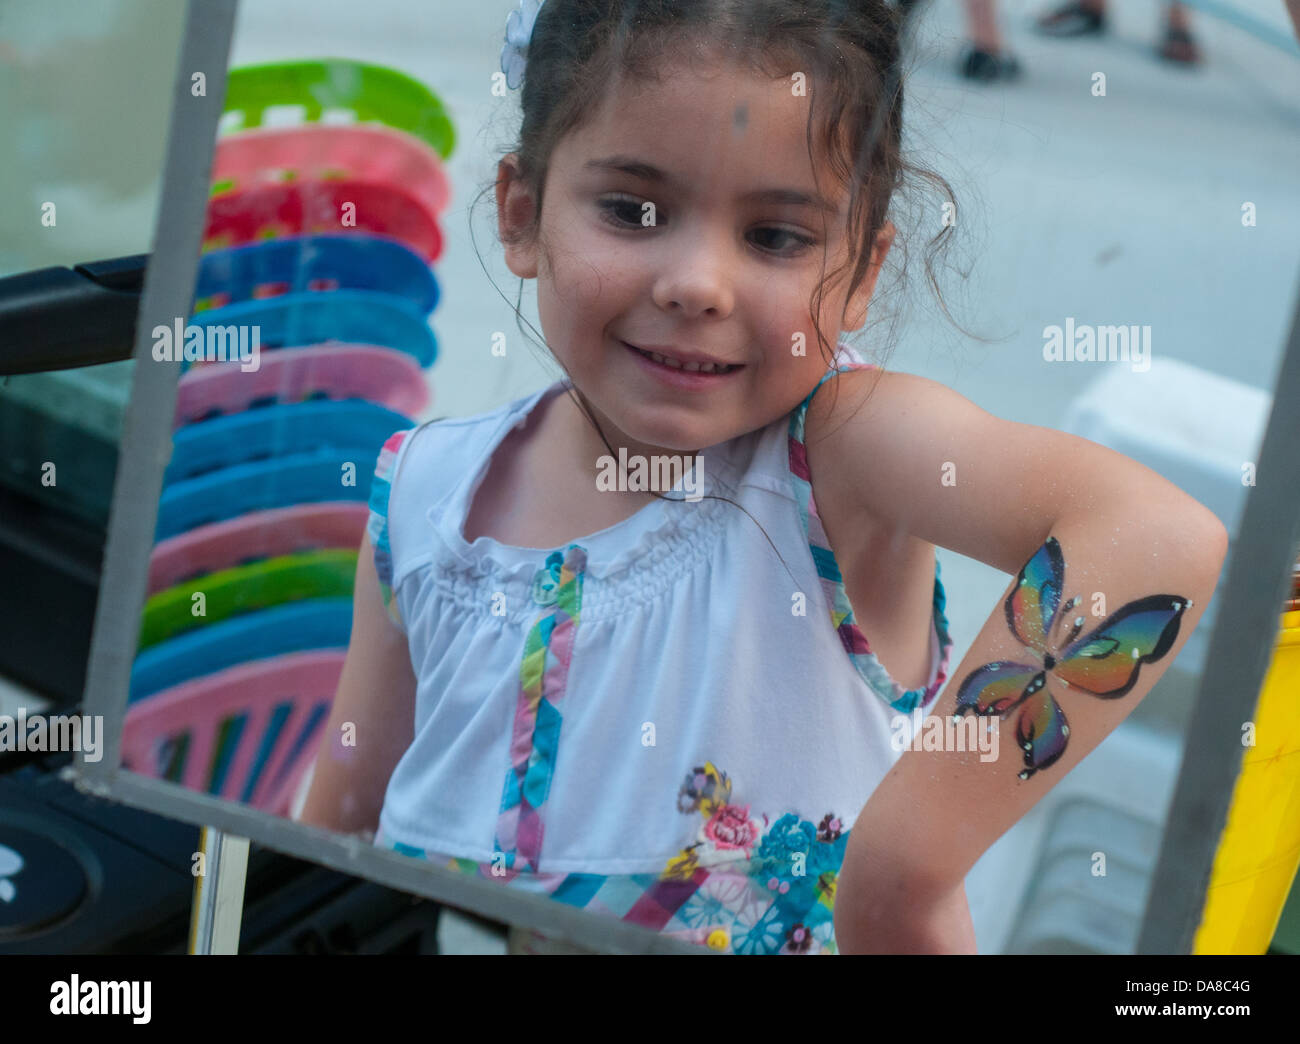 Children's artistic free make-up at Montreal Jazz Festival, Montreal Canada, July 2013 - Stock Image